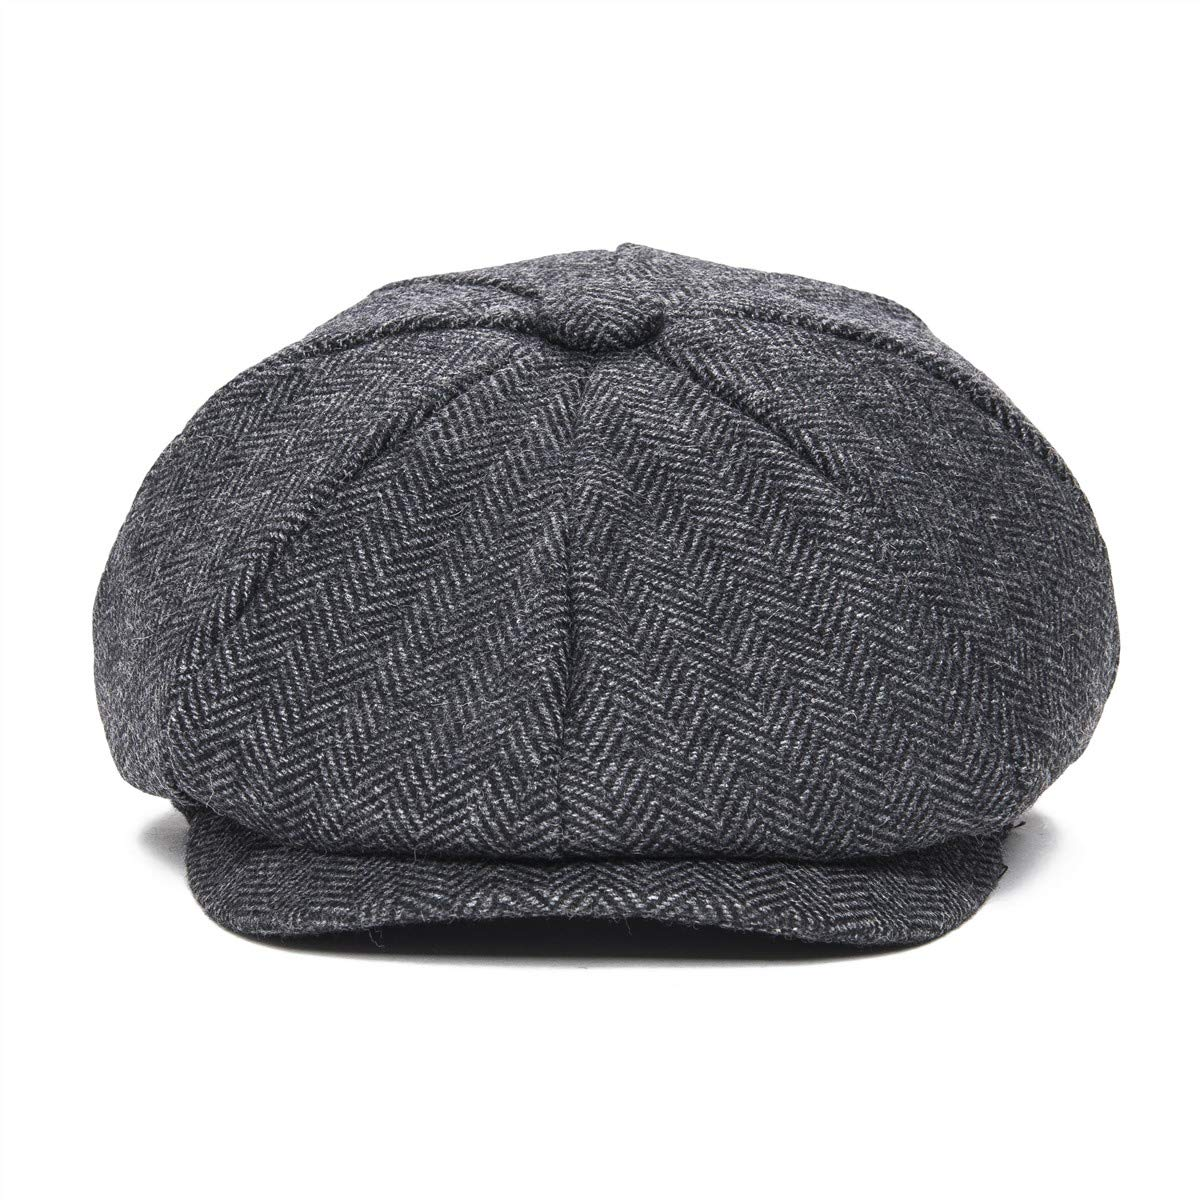 54aa1bf86f4 Amazon.com  JANGOUL Boys Vintage Newsboy Cap Tweed Flat Beret Cabbie Hat  for Kids Toddler Pageboy (50cm(12-24 Months)